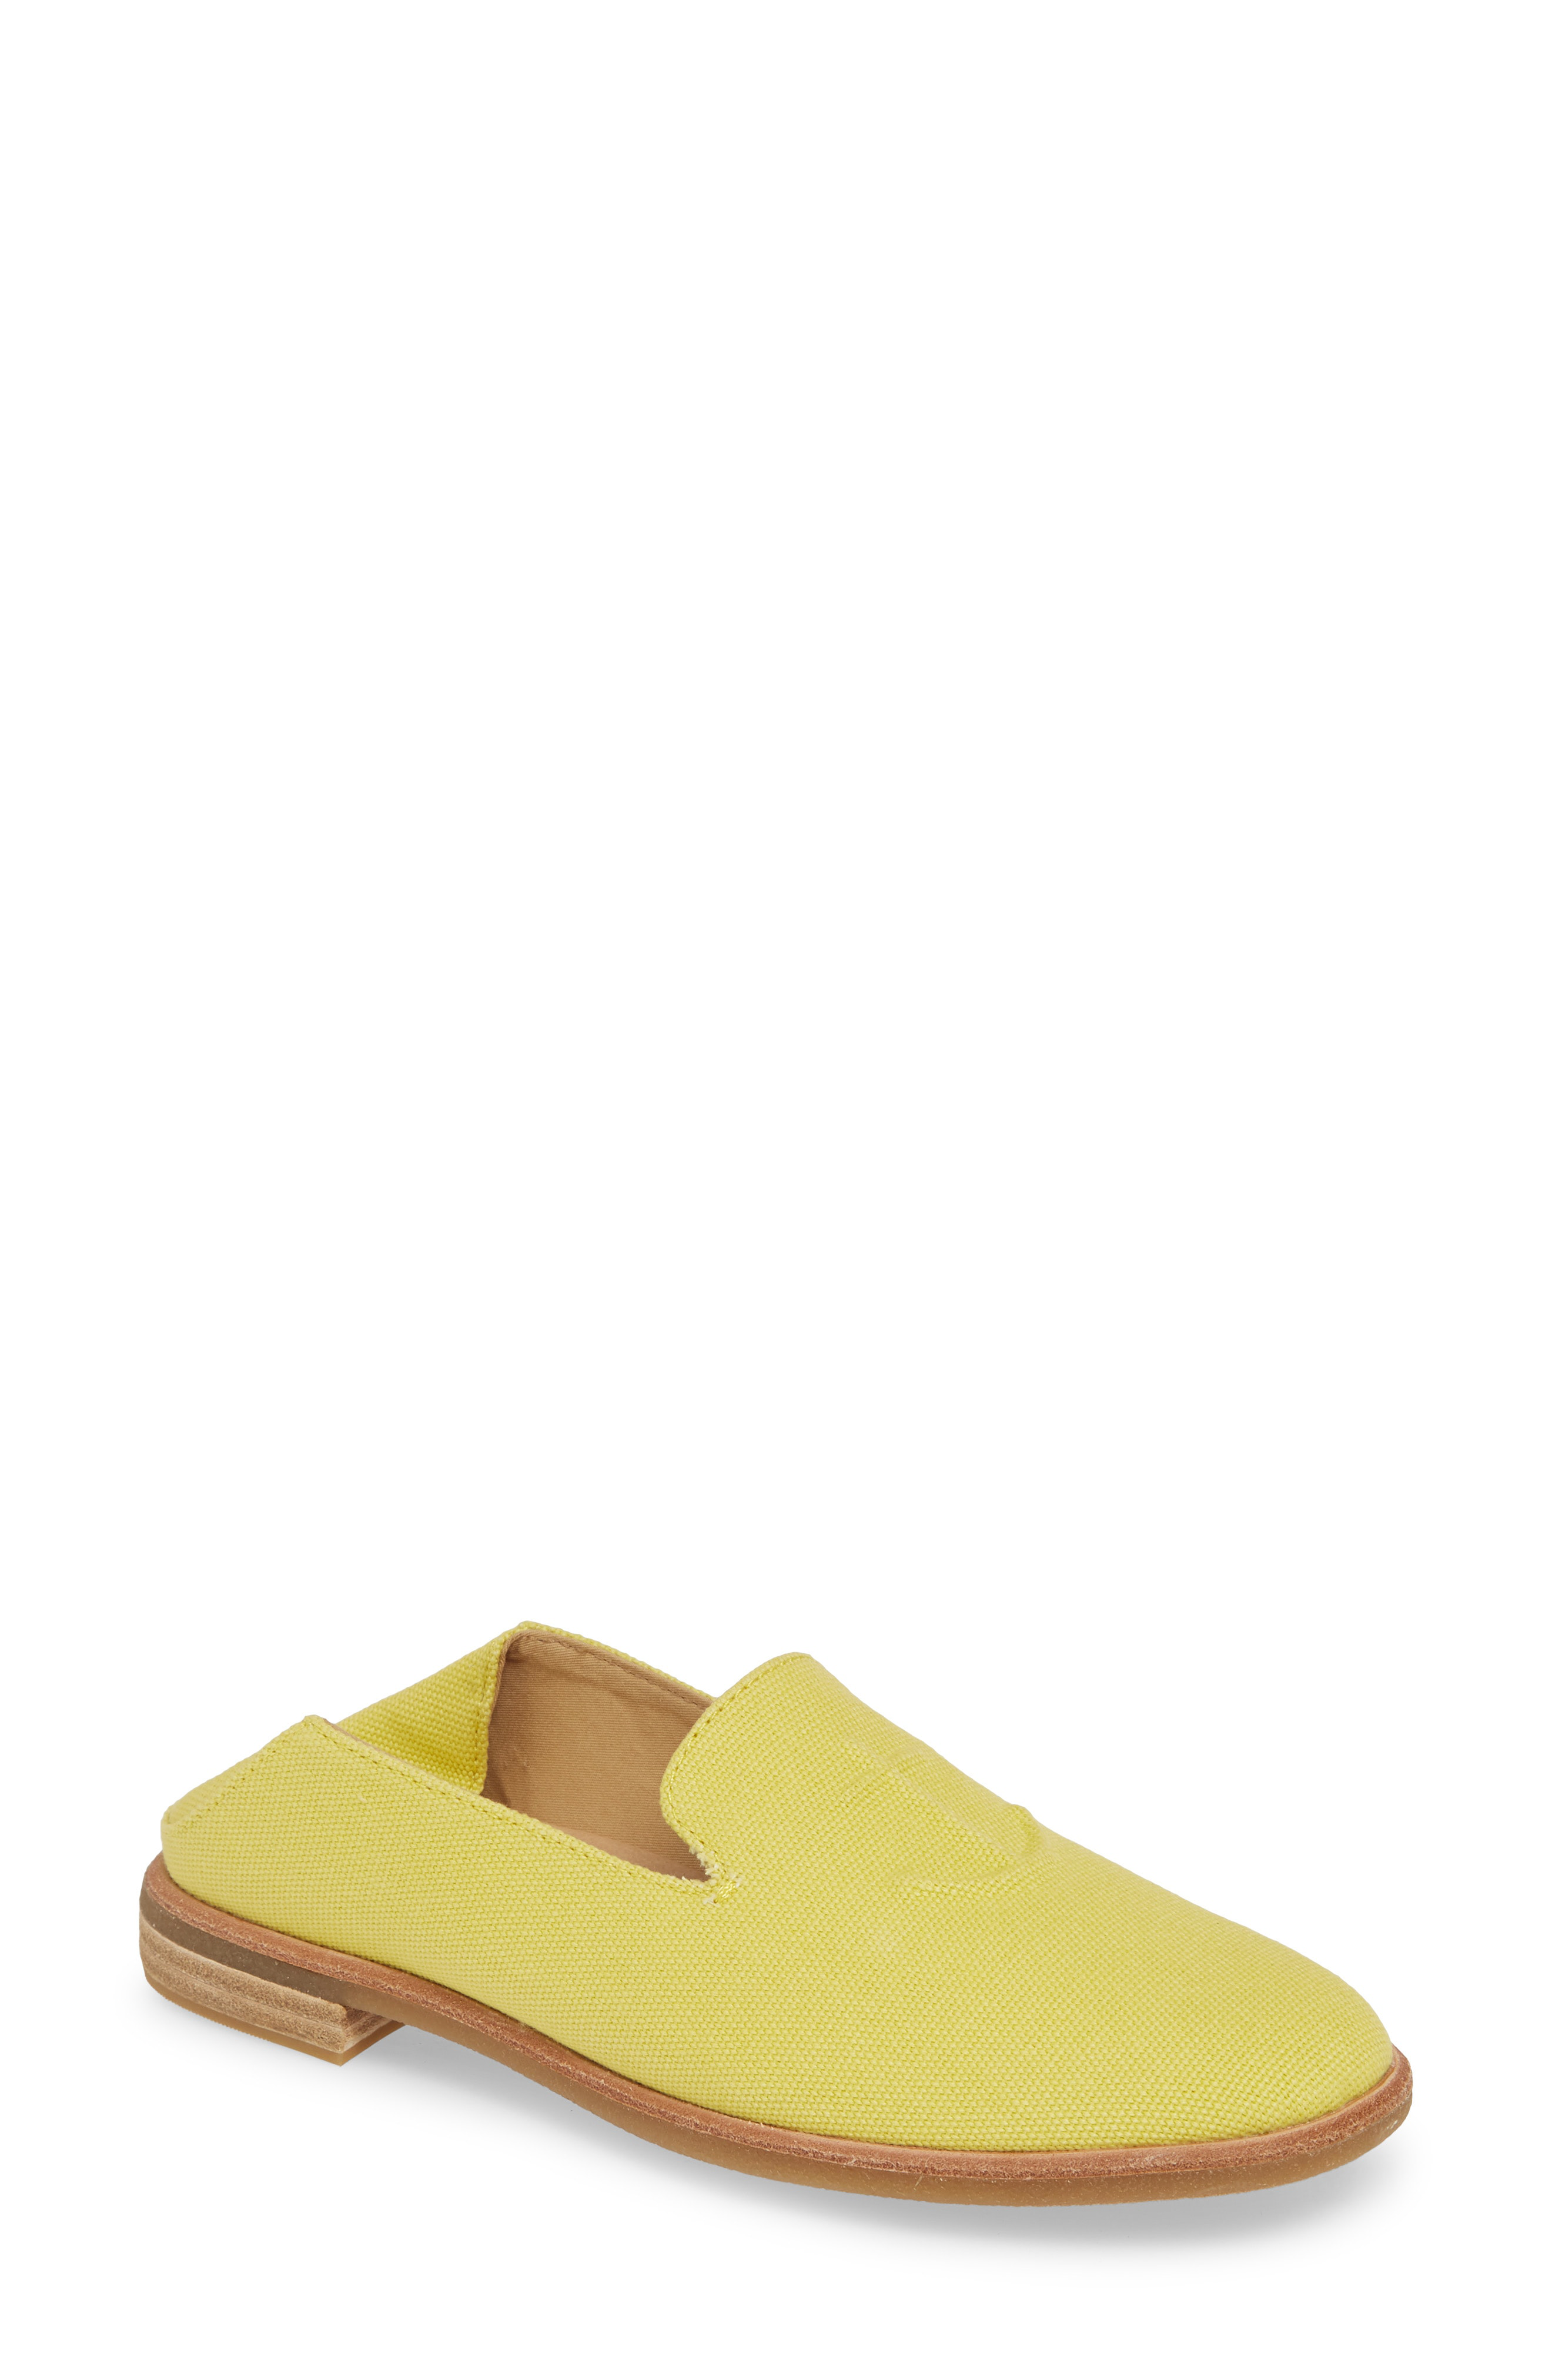 78d71700297 ... a supple loafer-inspired flat is fitted with a memory-foam footbed